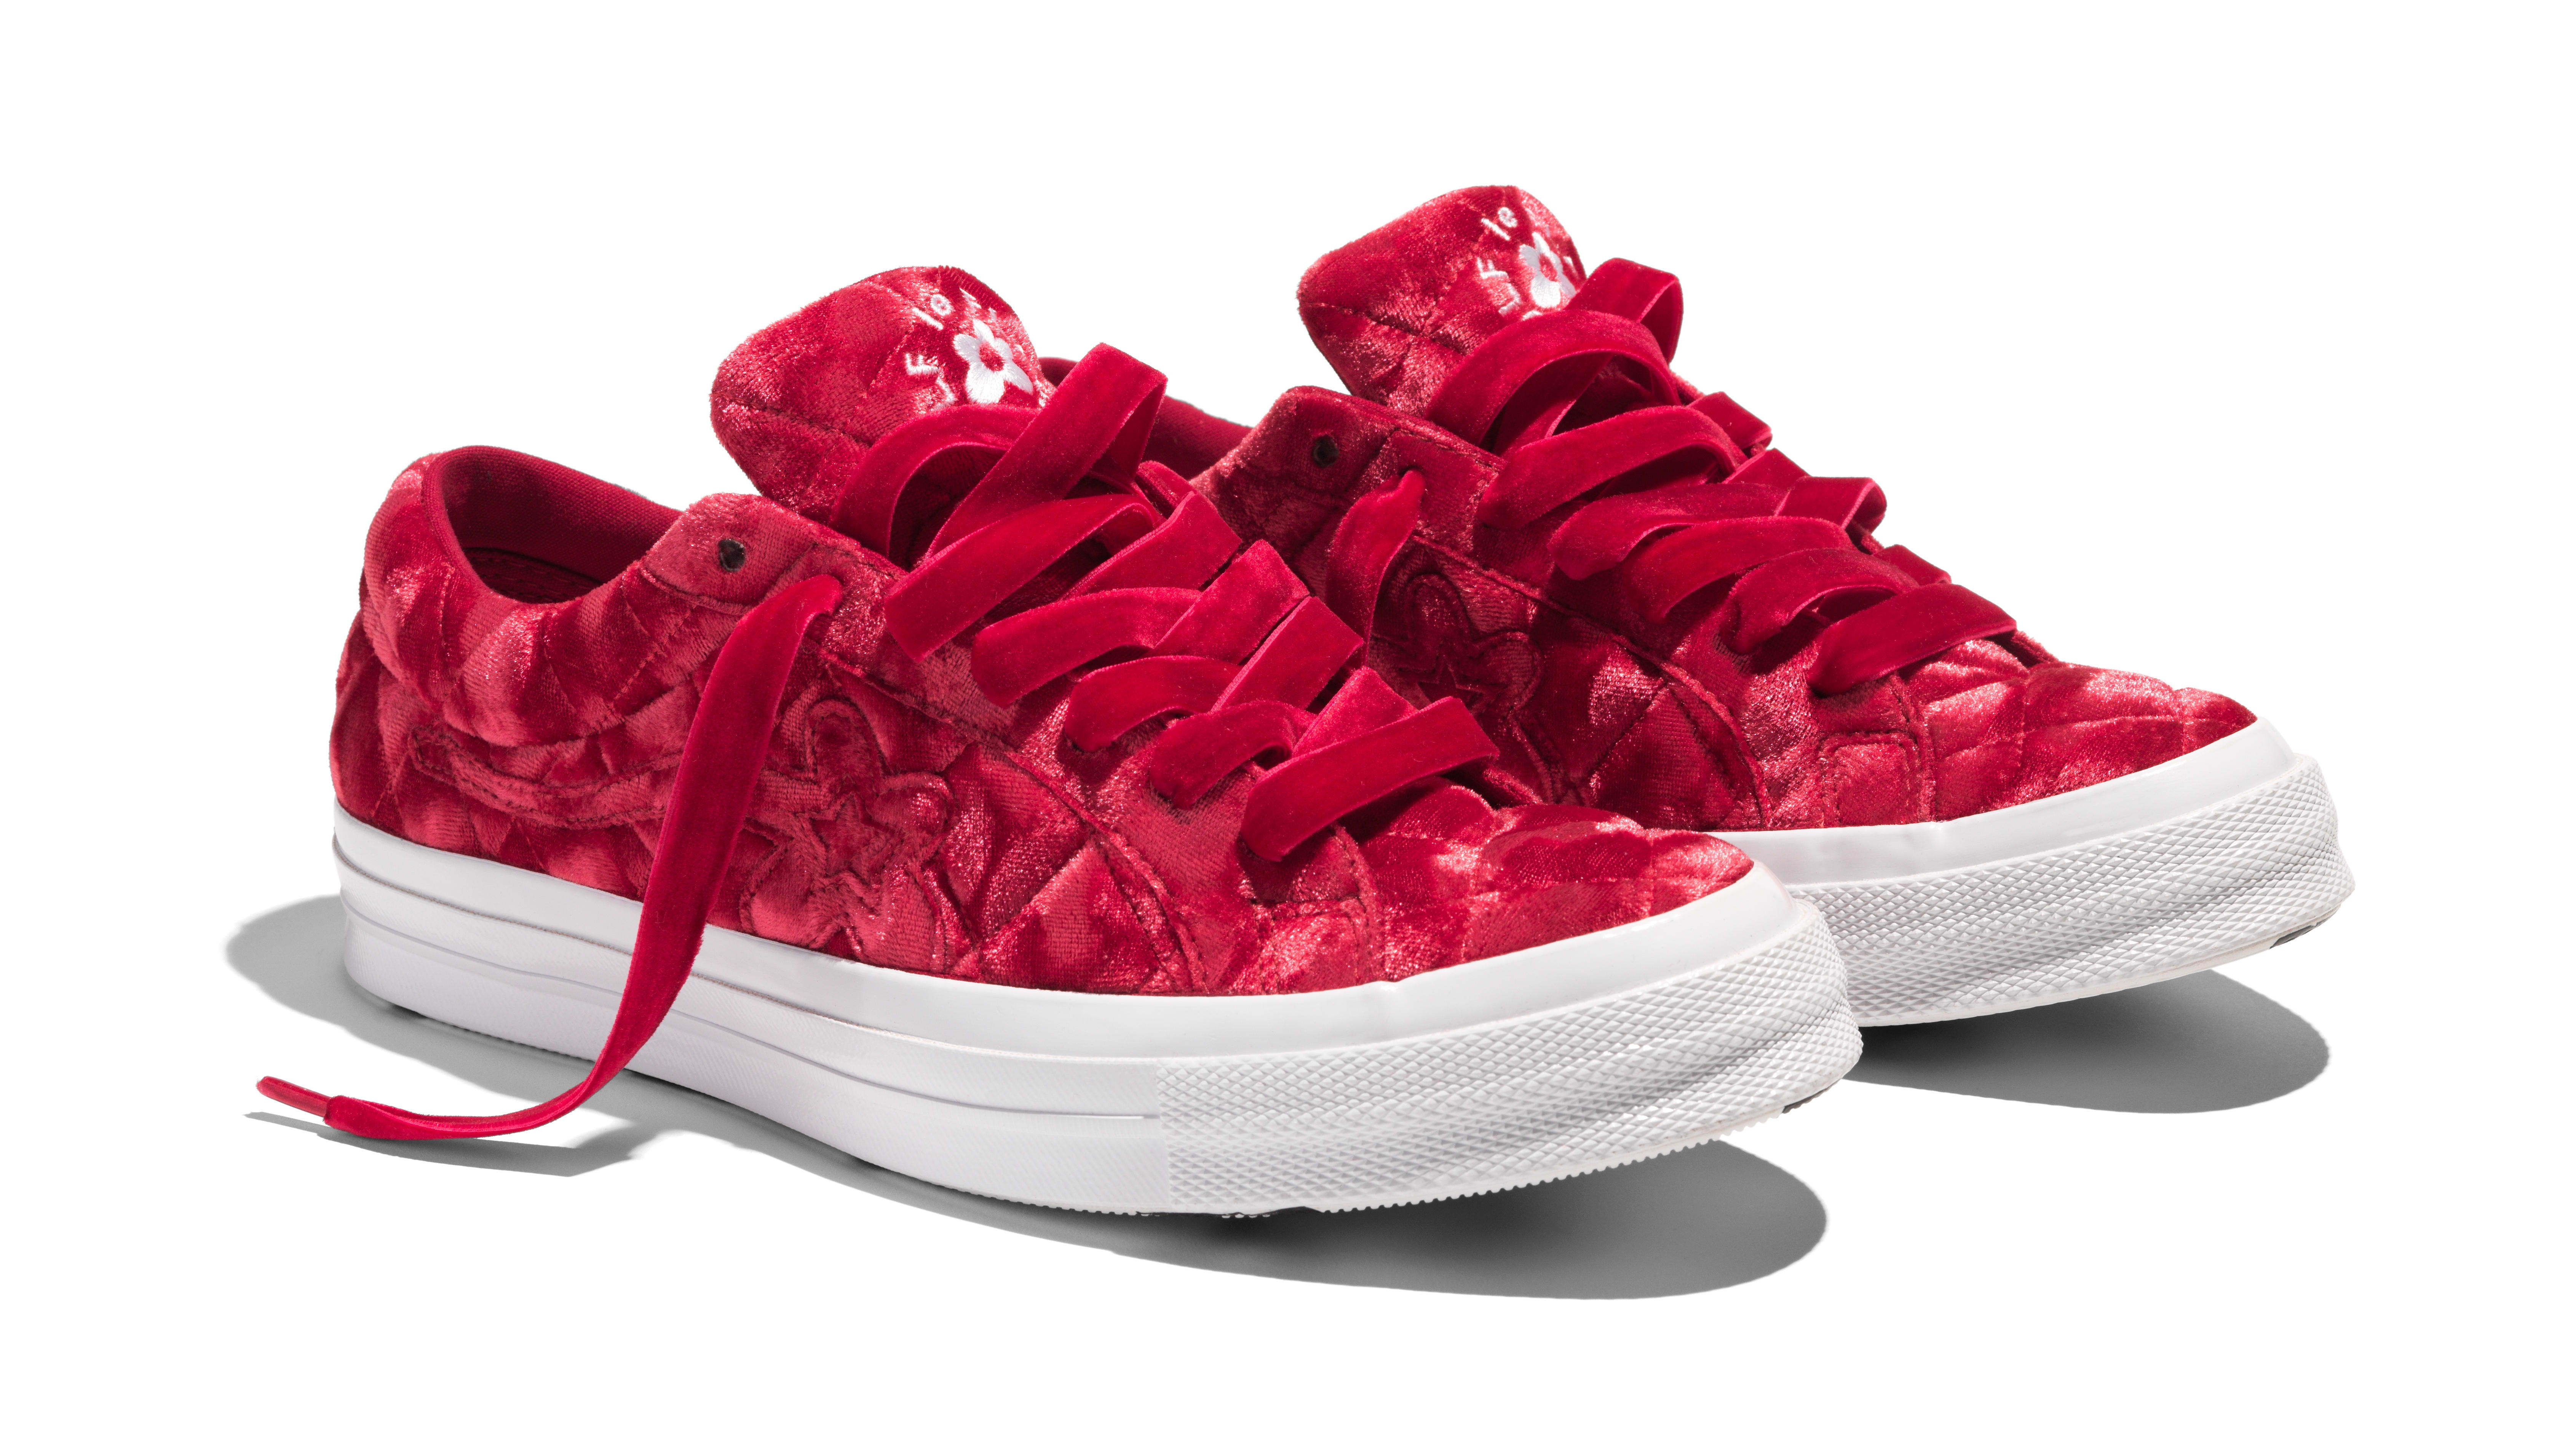 Converse x Golf Le Fleur 'Quilted Velvet' (Red)